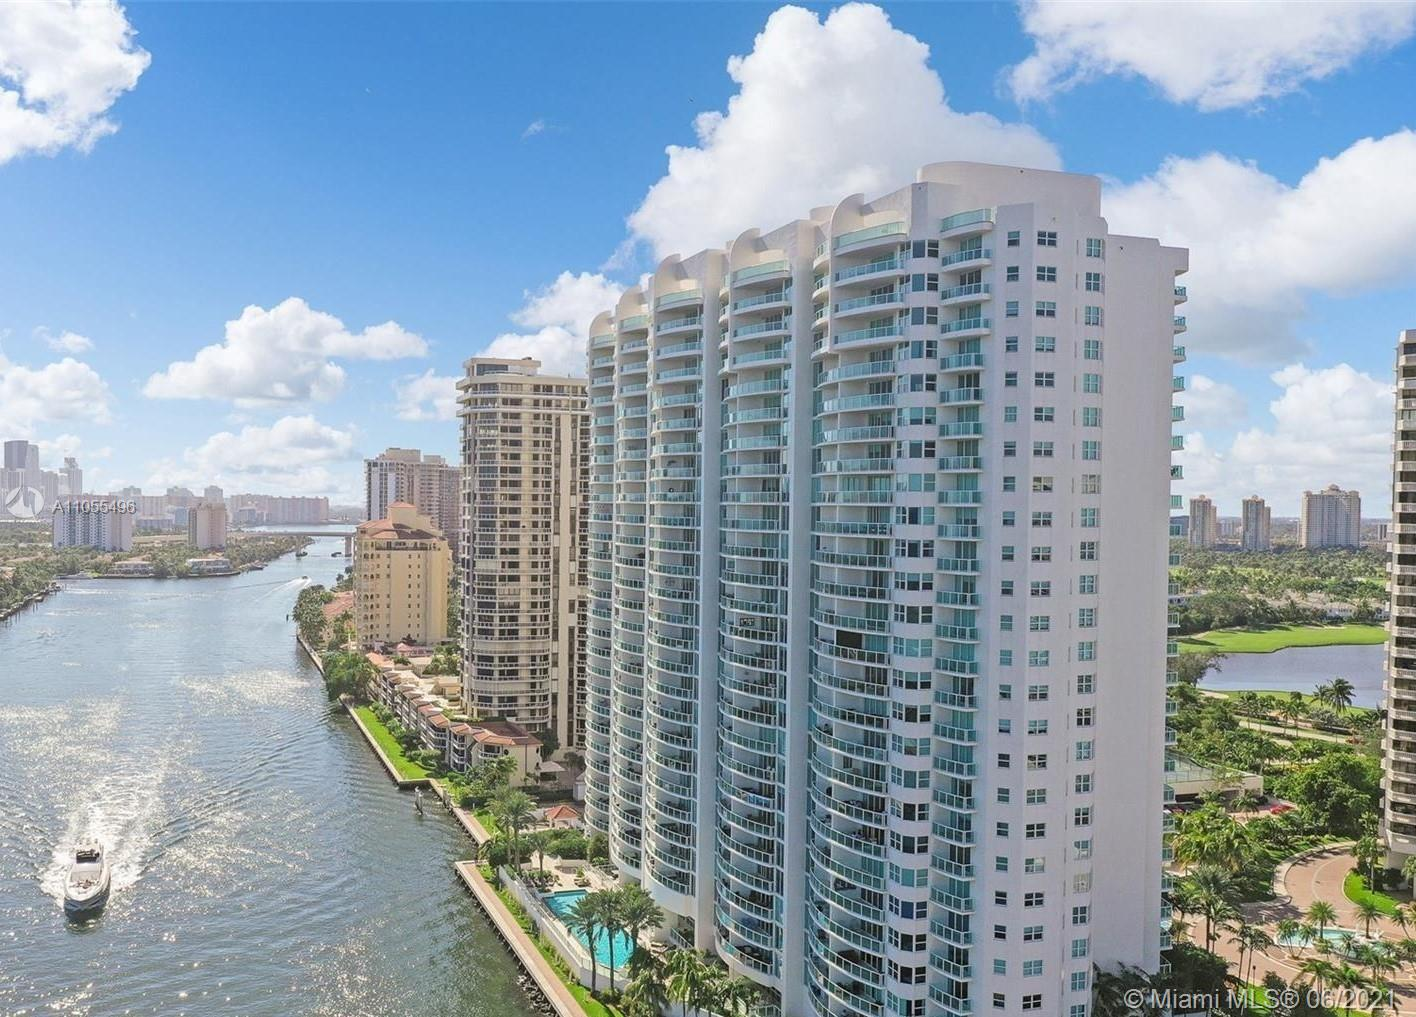 20201 E Country Club Dr #1907 For Sale A11055496, FL